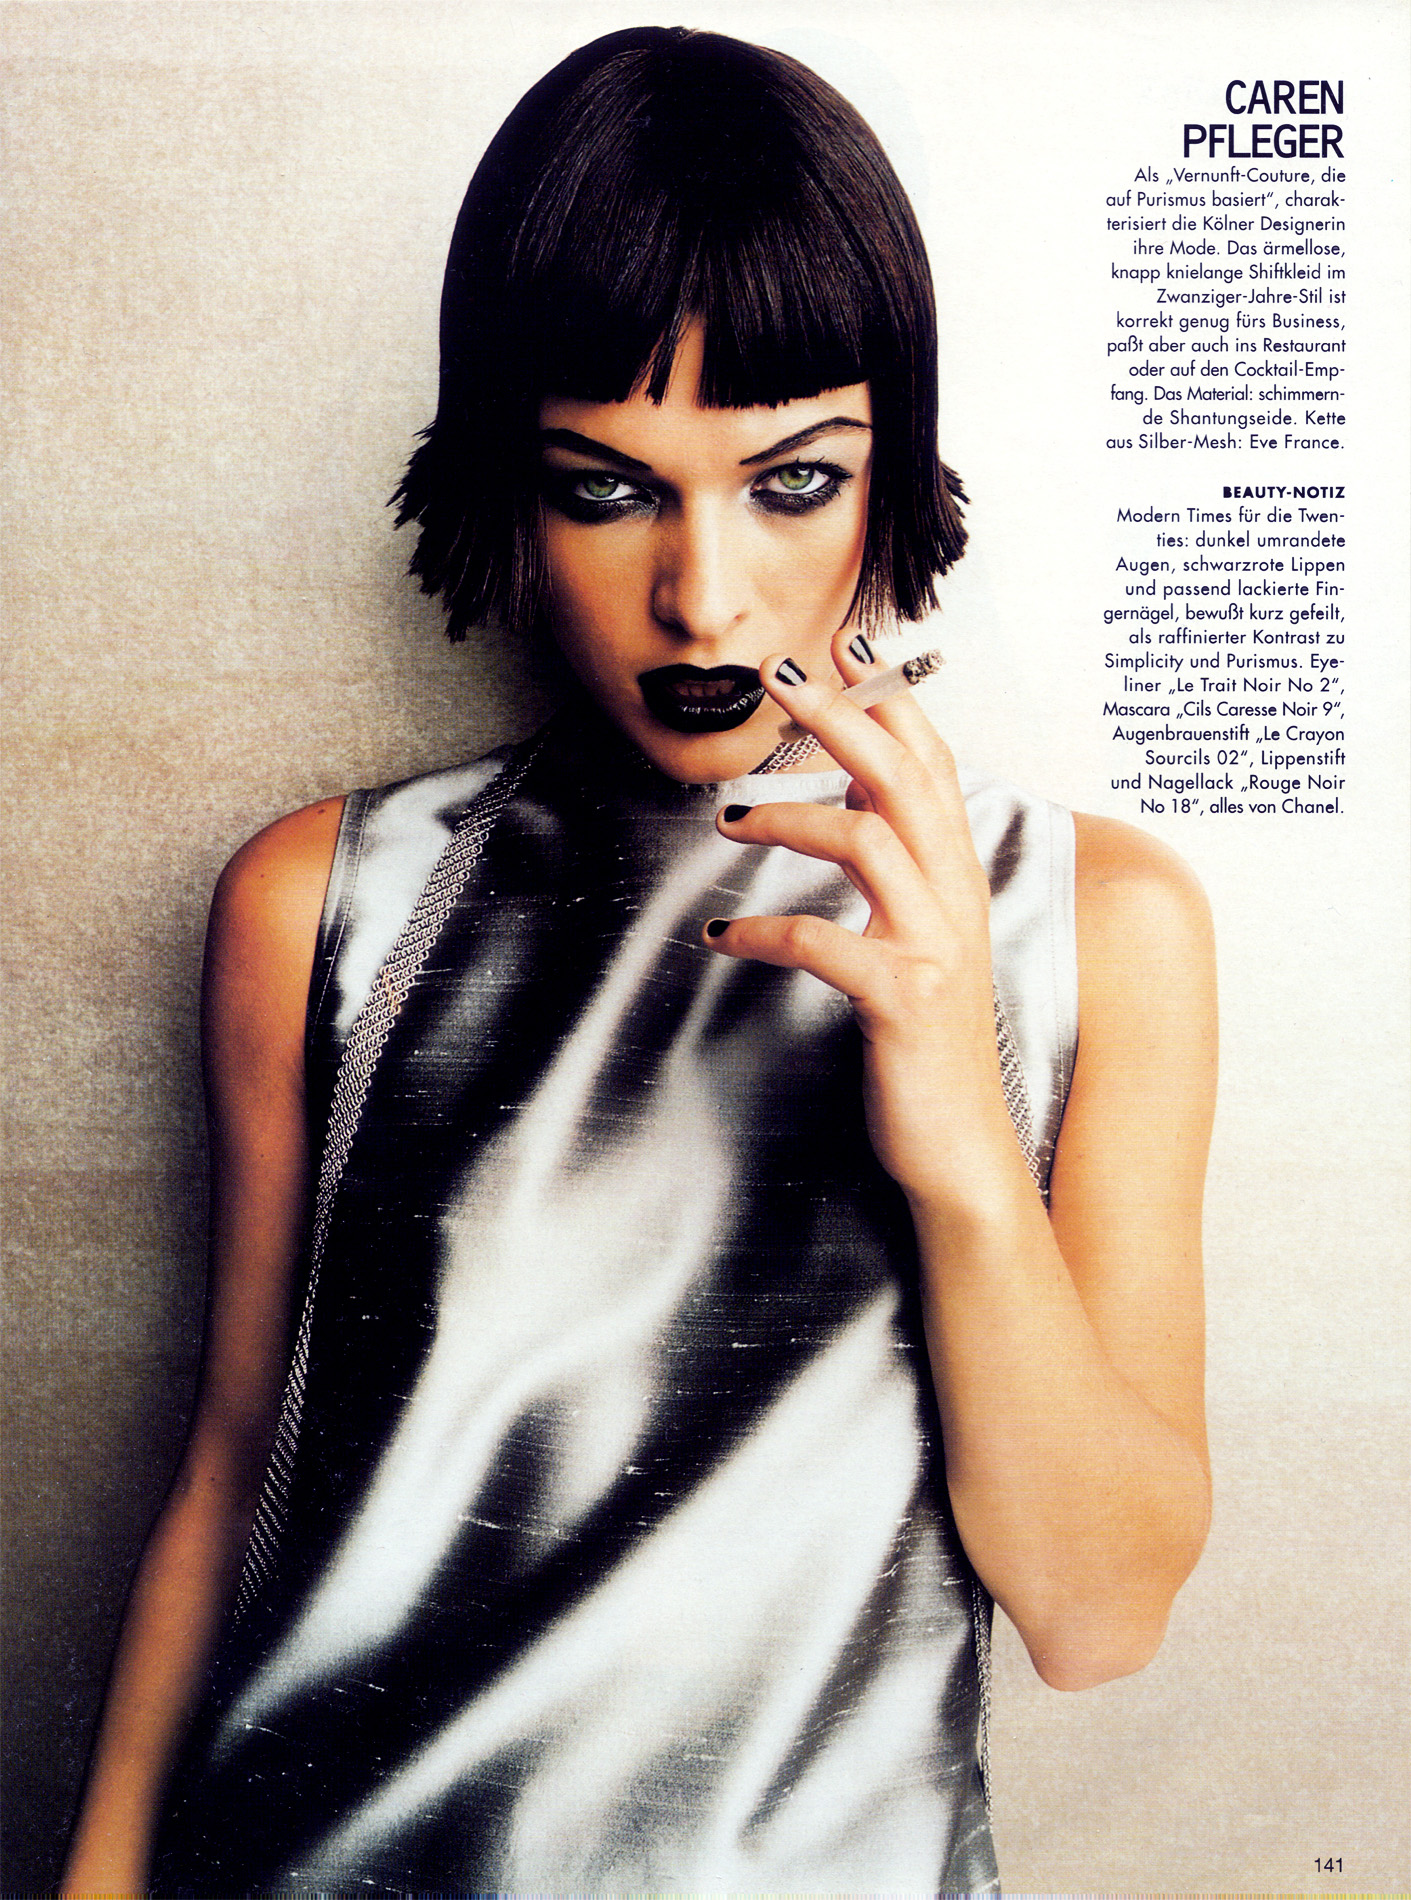 Fall Collage Wallpaper Millaj Com The Official Milla Jovovich Website What